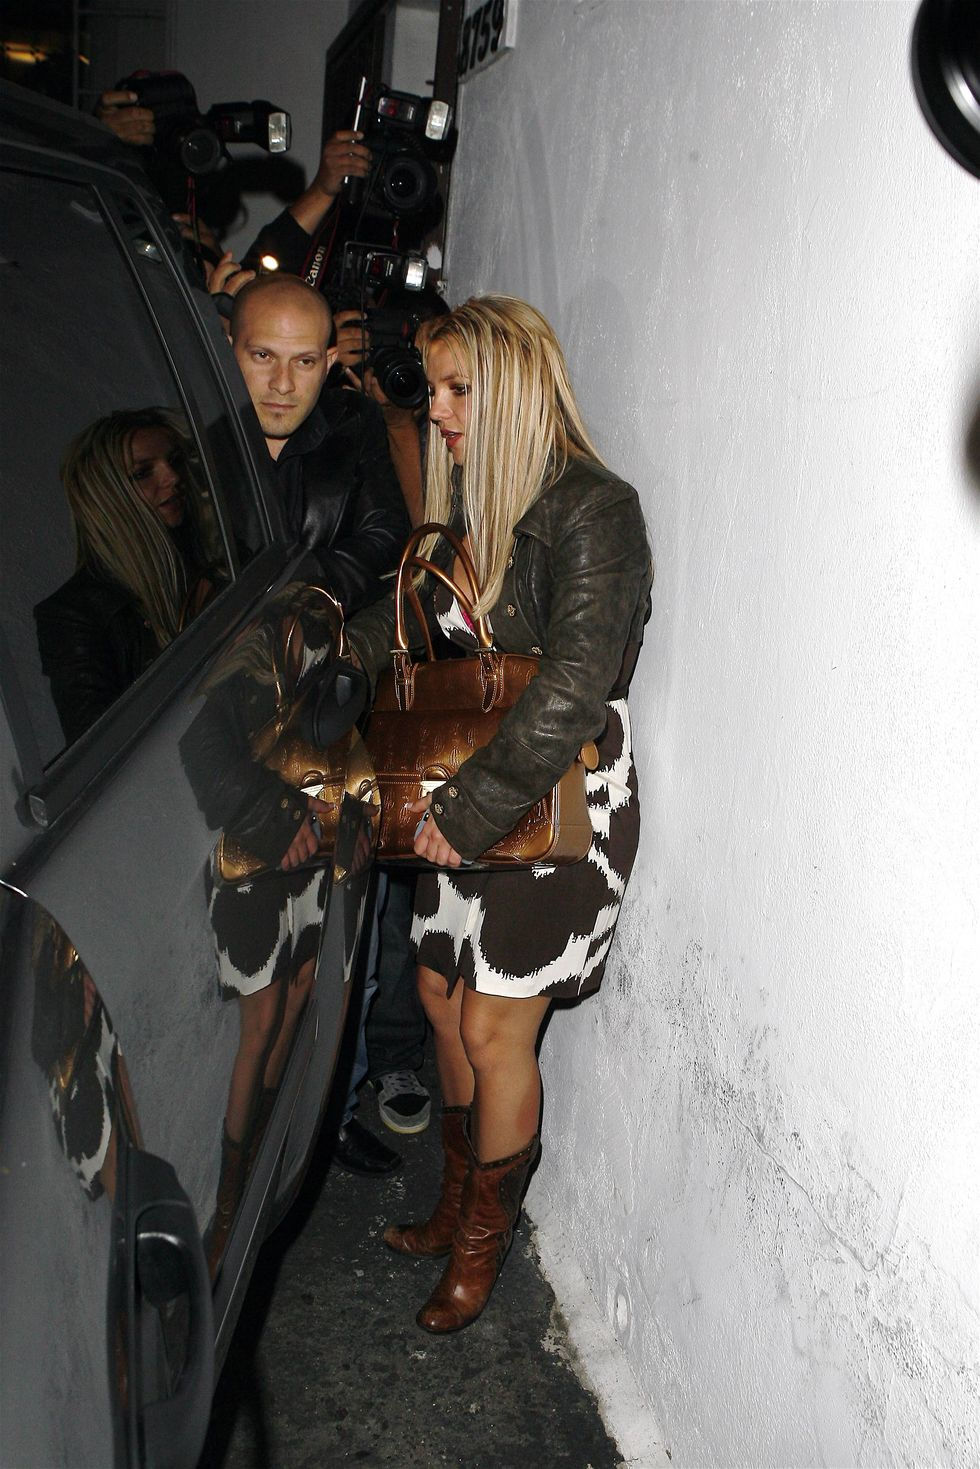 britney-spears-at-sur-resataurant-in-hollywood-01